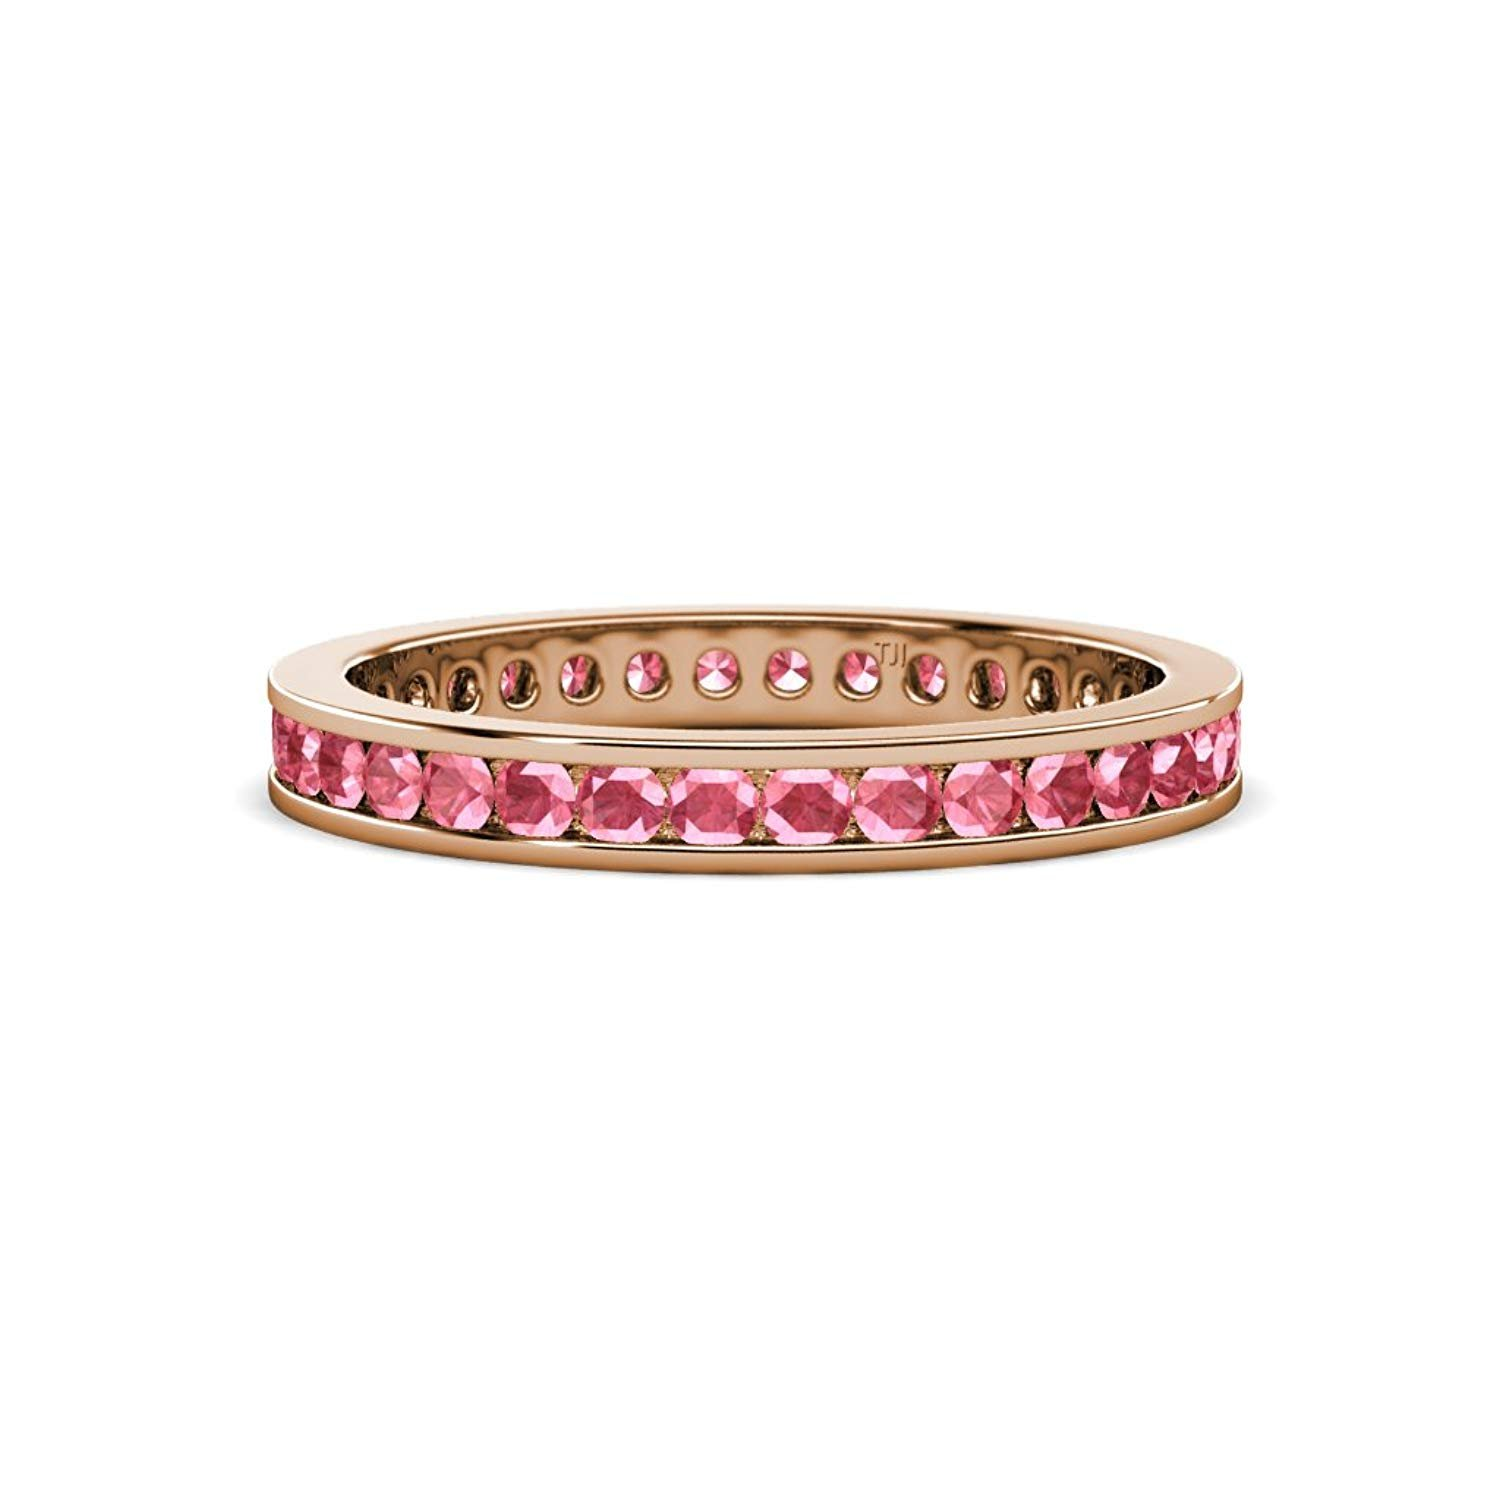 Pink Tourmaline 2mm Channel Set Eternity Band 0.59 Carat tw-0.70 Carat tw in 14K Rose Gold.size 6.25 by TriJewels